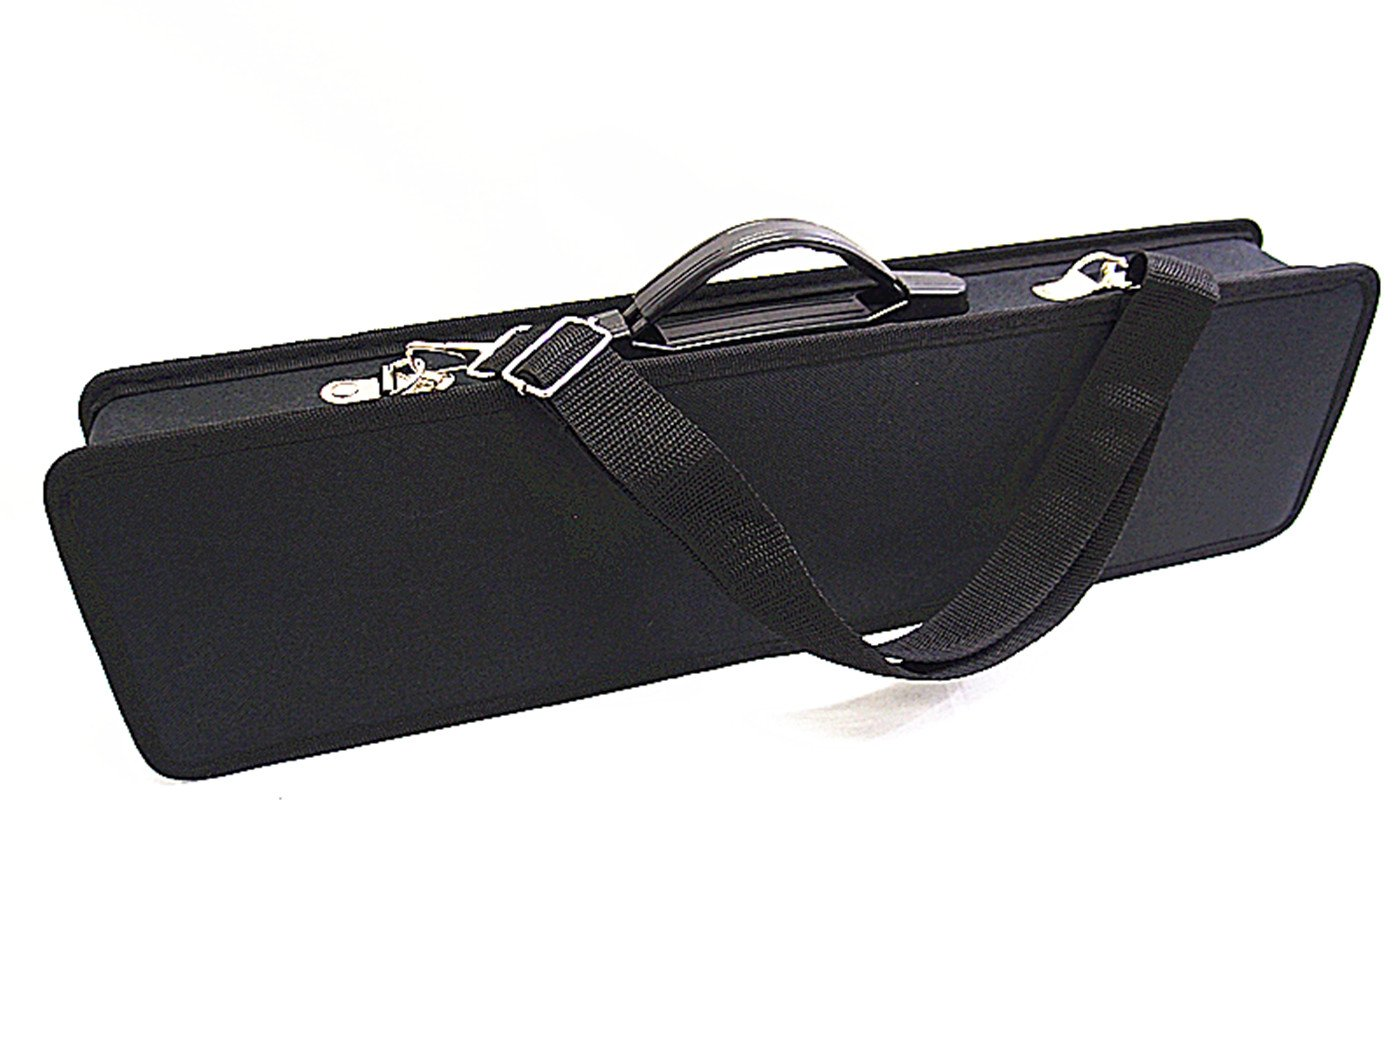 Woodnote Brand - Black Piano Style 37 Key Melodica and & Deluxe Carrying Case